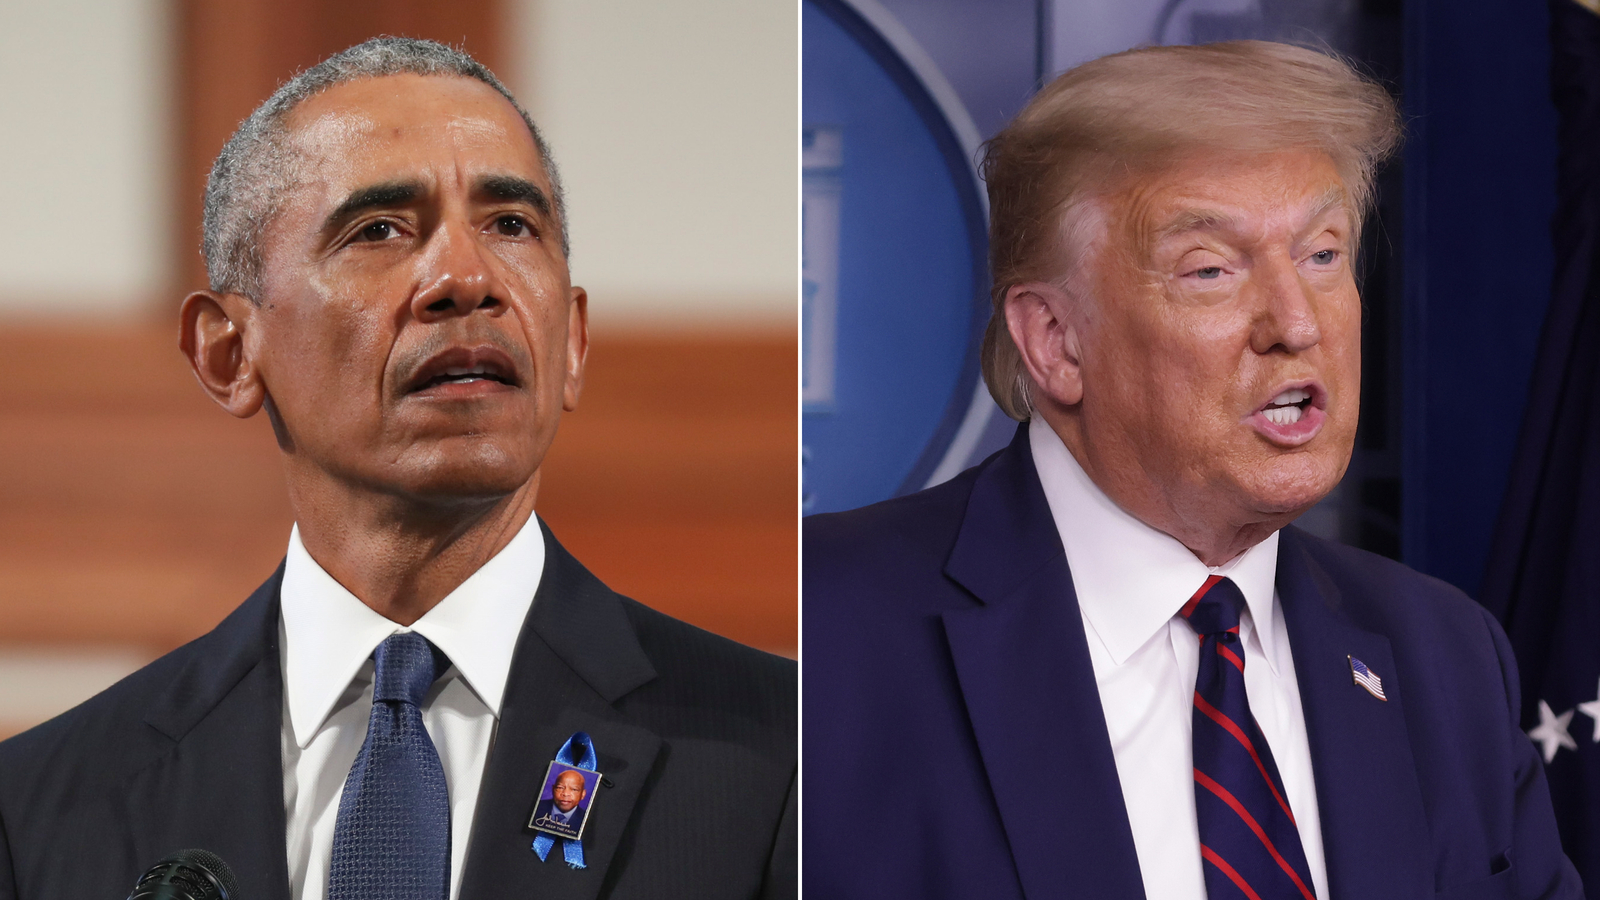 Trump trashes Obama's Lewis eulogy that pressed for voting rights